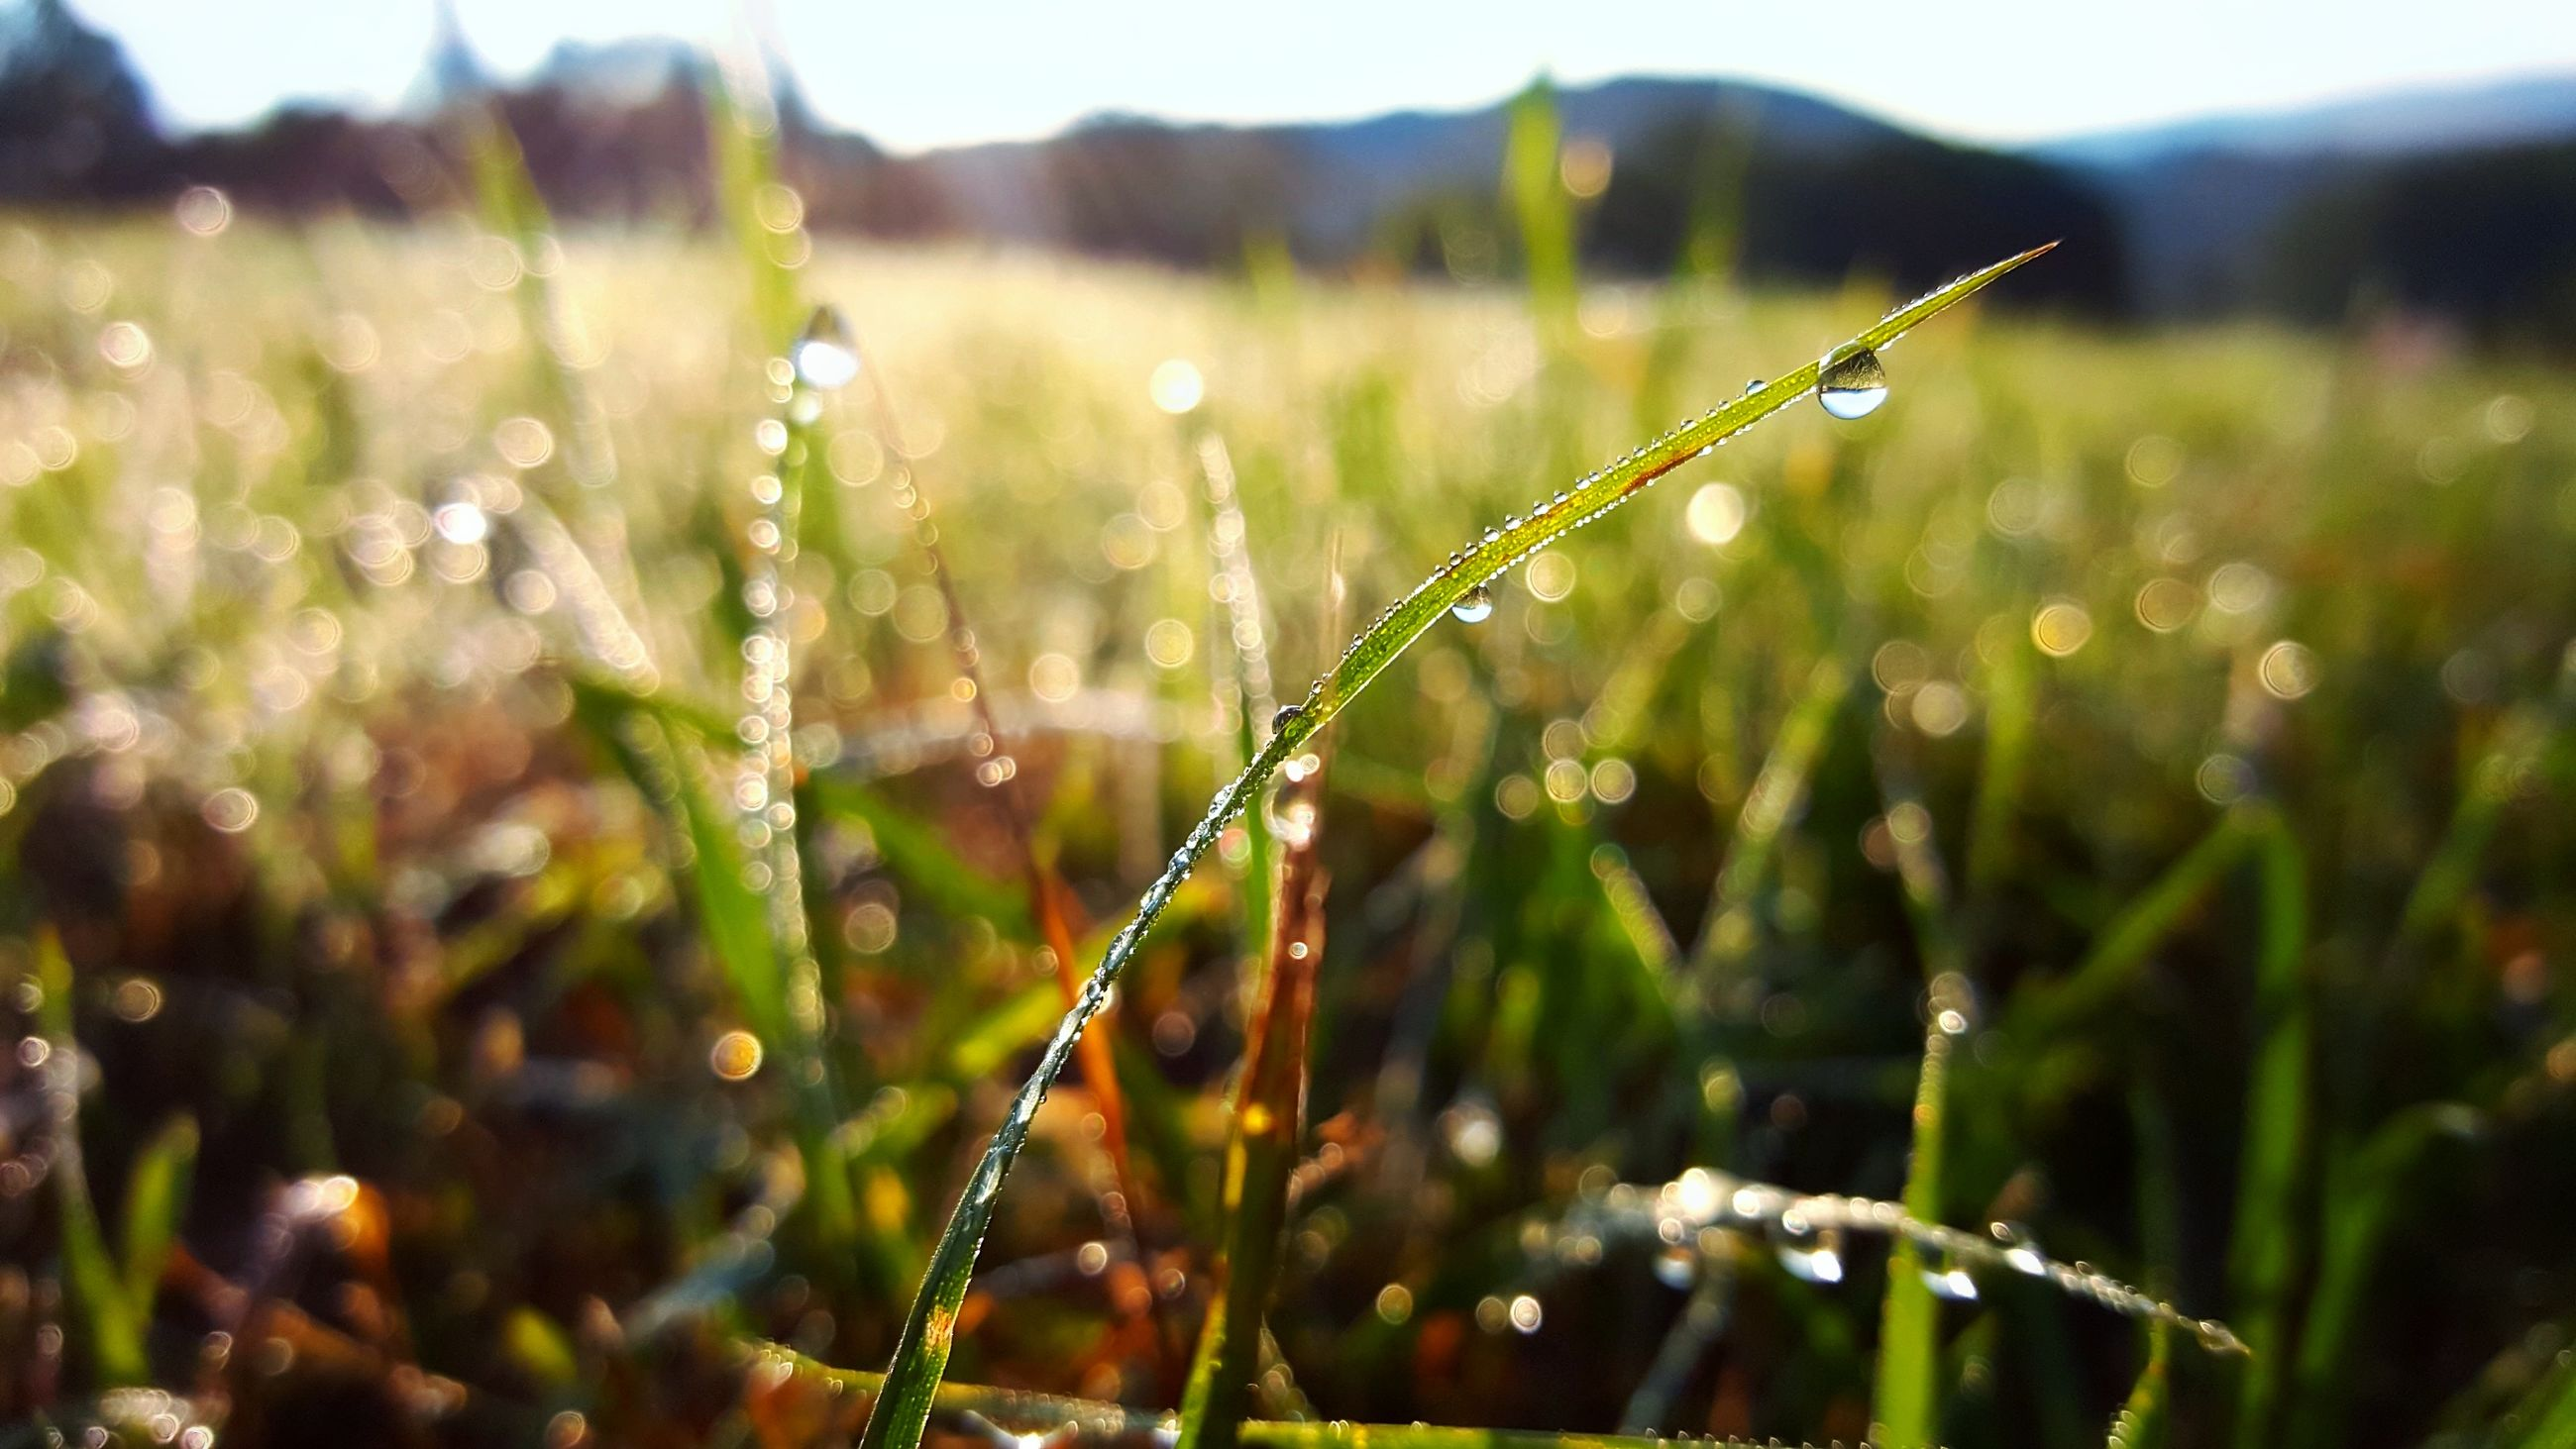 nature, growth, drop, plant, beauty in nature, grass, no people, close-up, outdoors, wet, field, water, day, landscape, fragility, freshness